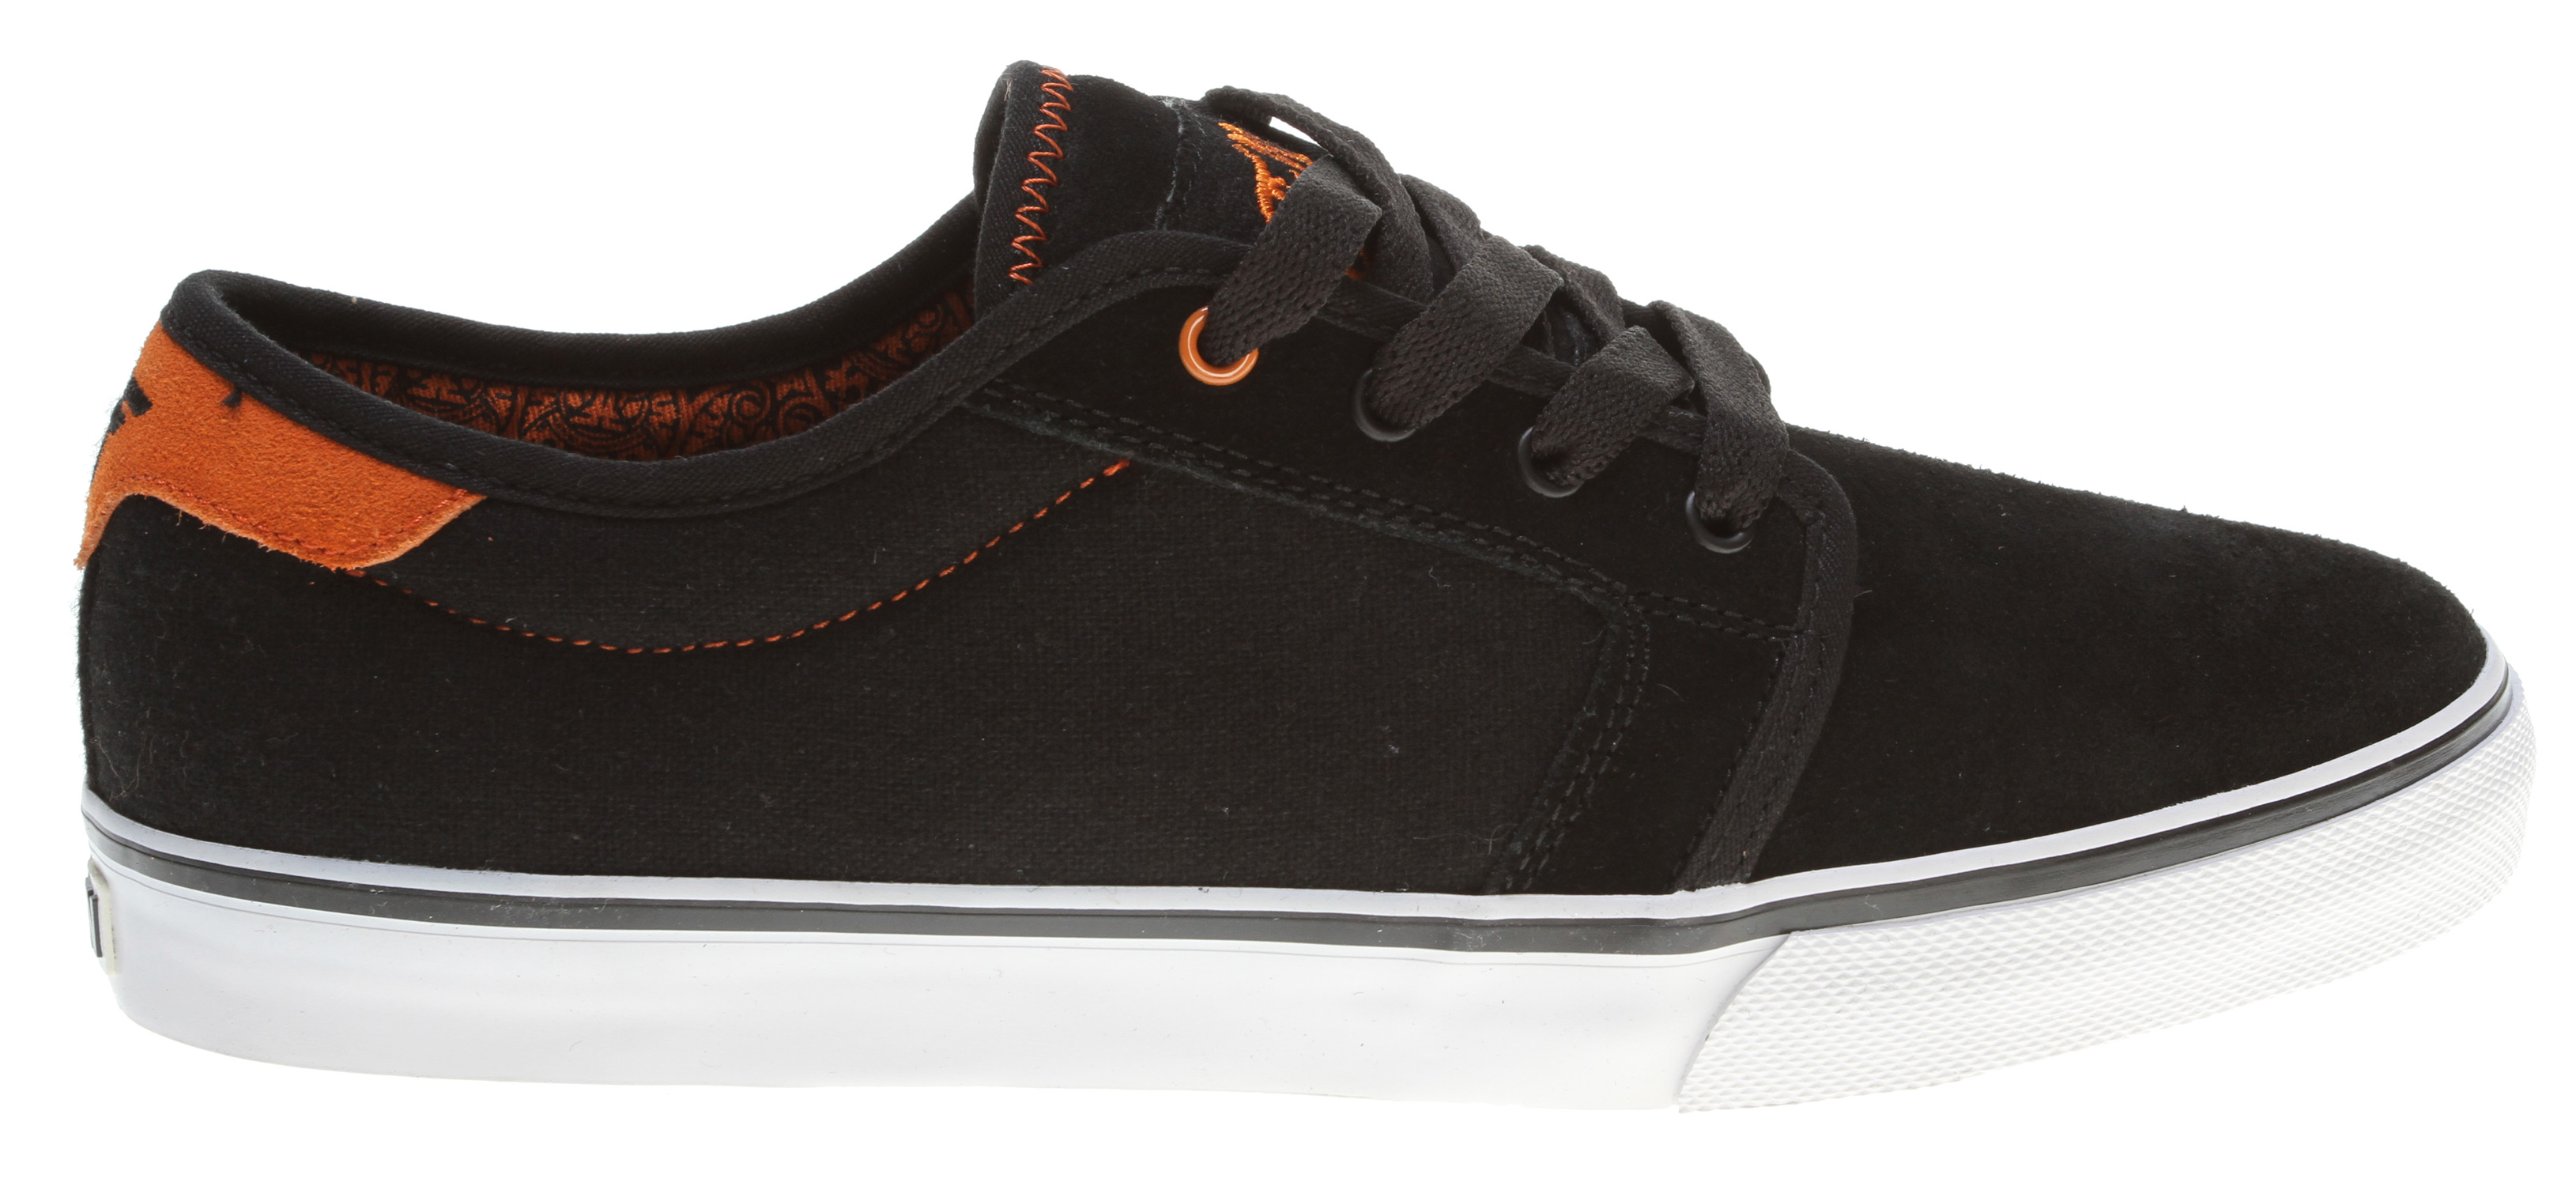 Skateboard This Jamie Thomas signature model is the perfect combination of skate durability and casual elegance. The Fallen Forte has become a proven staple in skateboard footwear.Key Features of the Fallen Forte Skate Shoes: Genuine heavy duty suede and/or canvas upper Select models features synthetic suede or premium materials Lightly foam-padded collar and tongue for comfort and support Vulcanized sole construction EVA insole to absorb impact and provide cushioning - $39.95